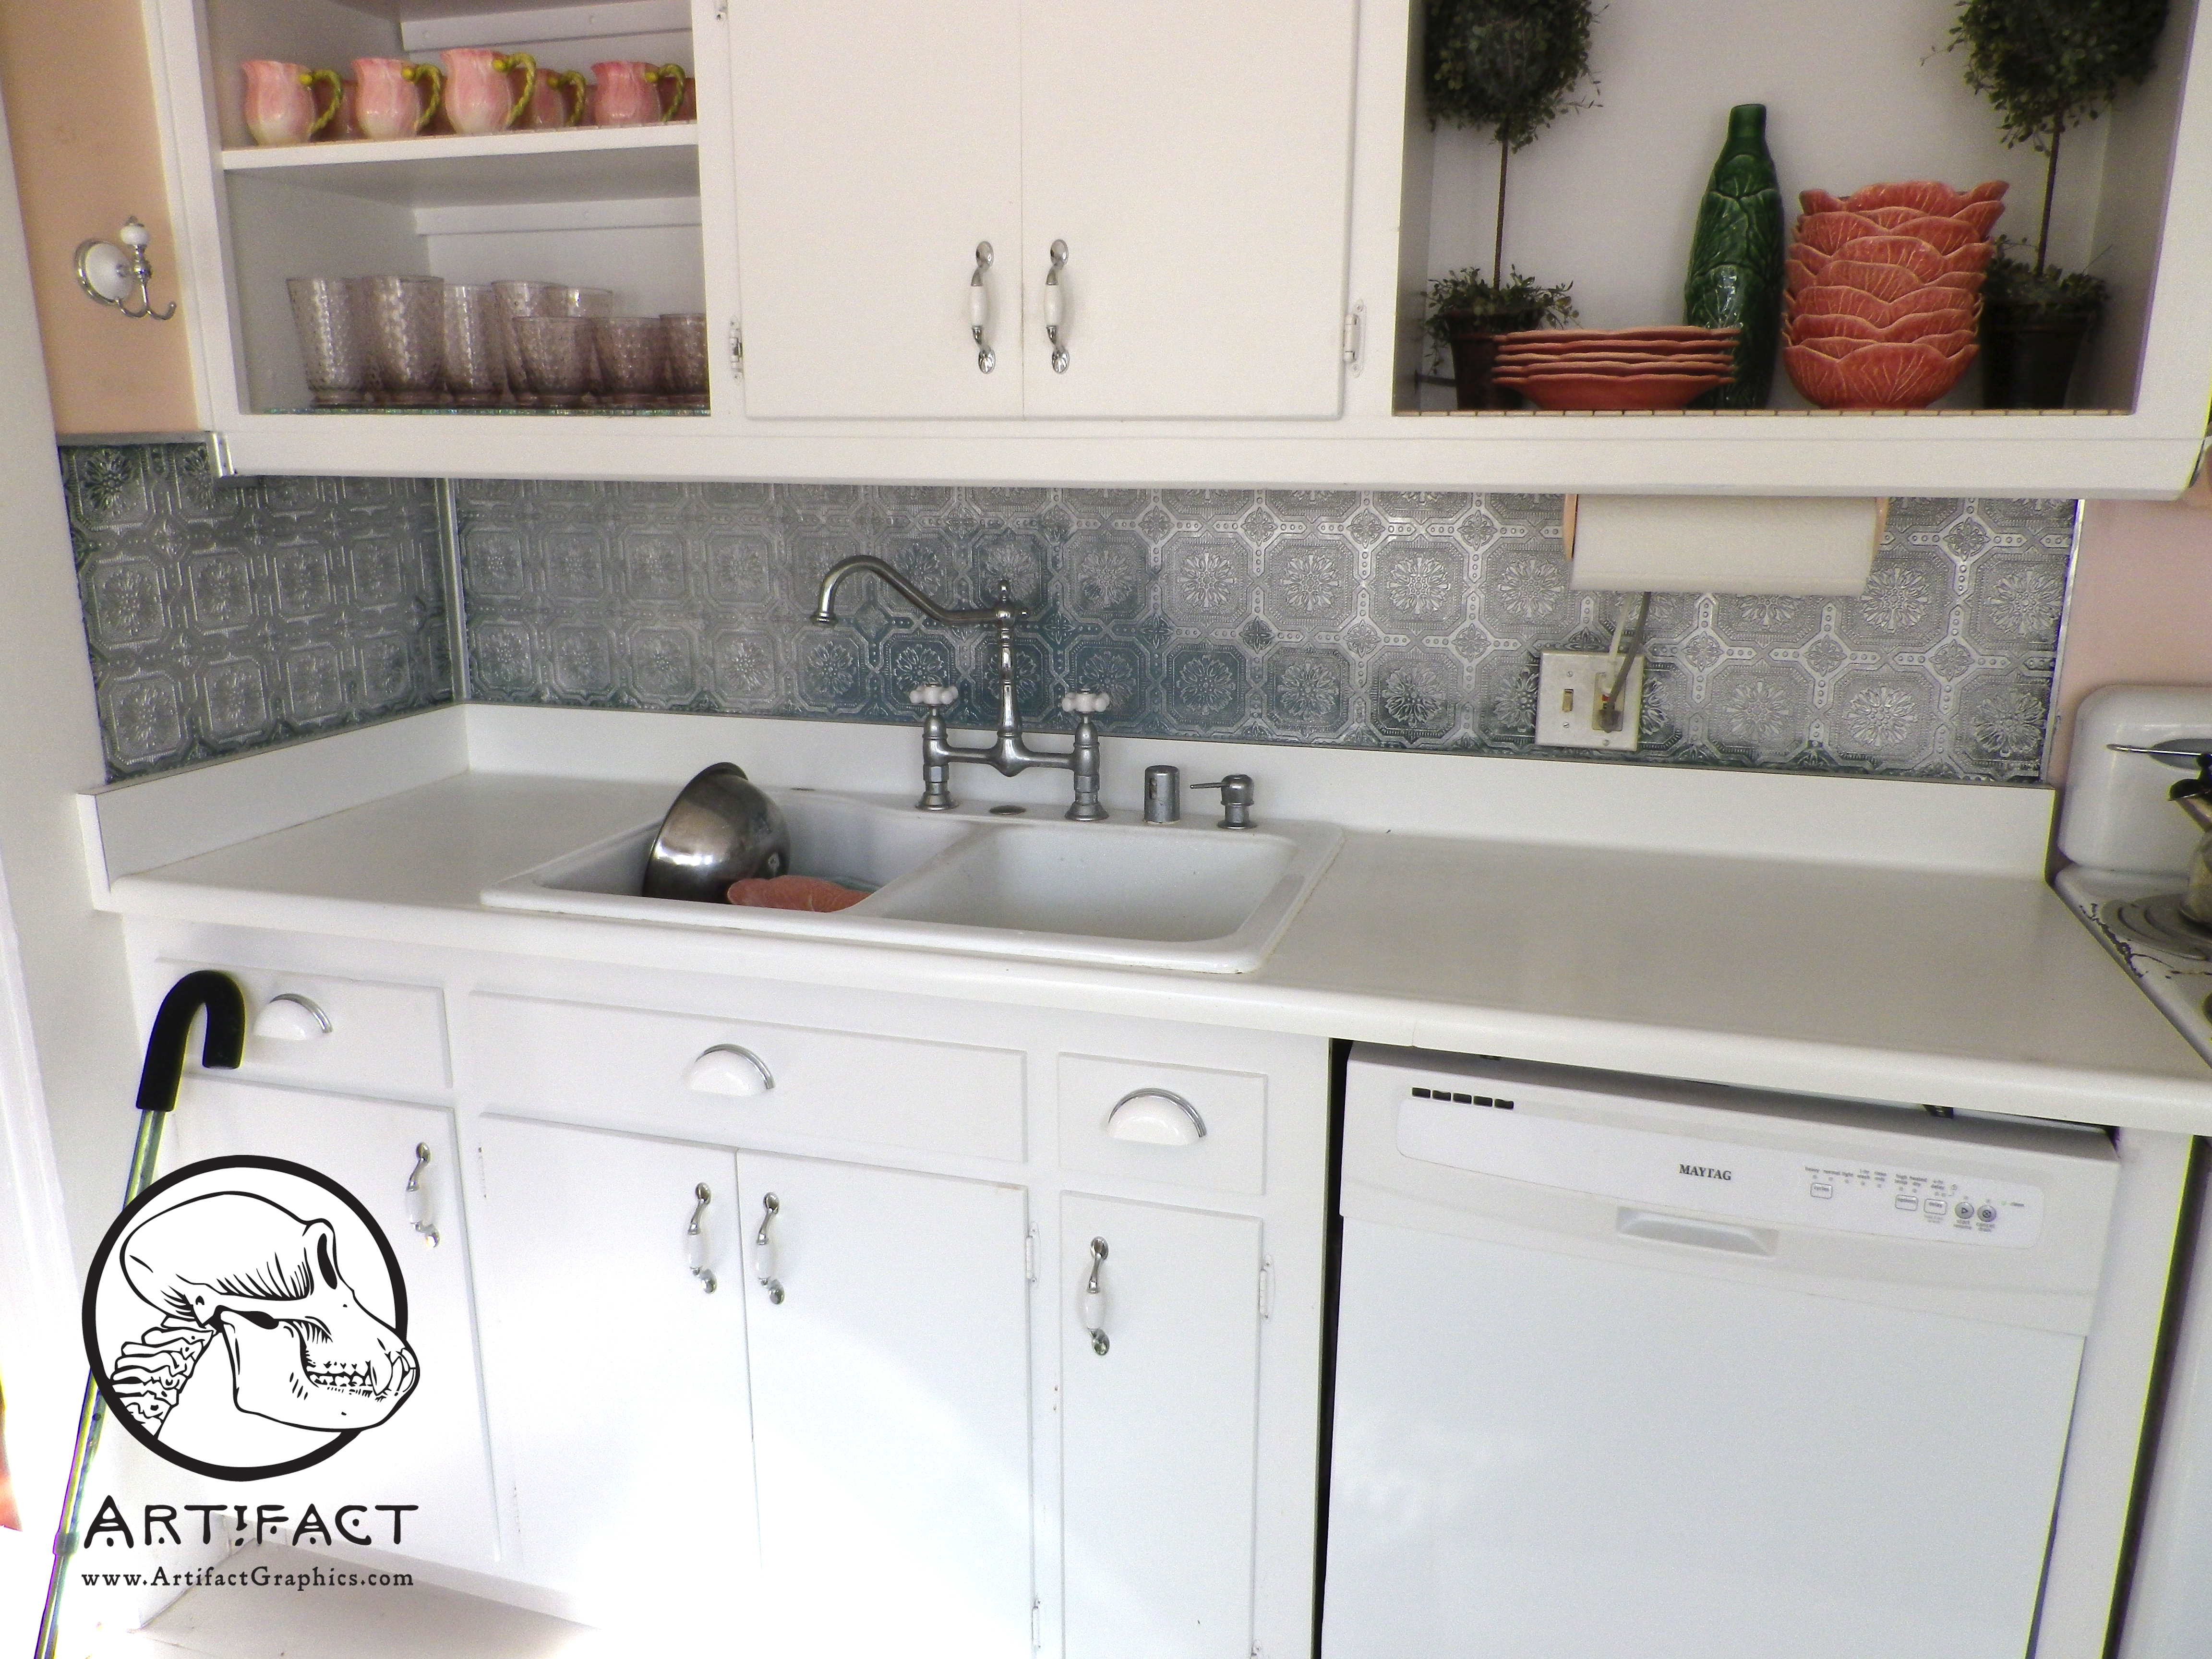 How To Paint A Faux Pressed Tin Tile Backsplash Artifact Graphics 4608x3456